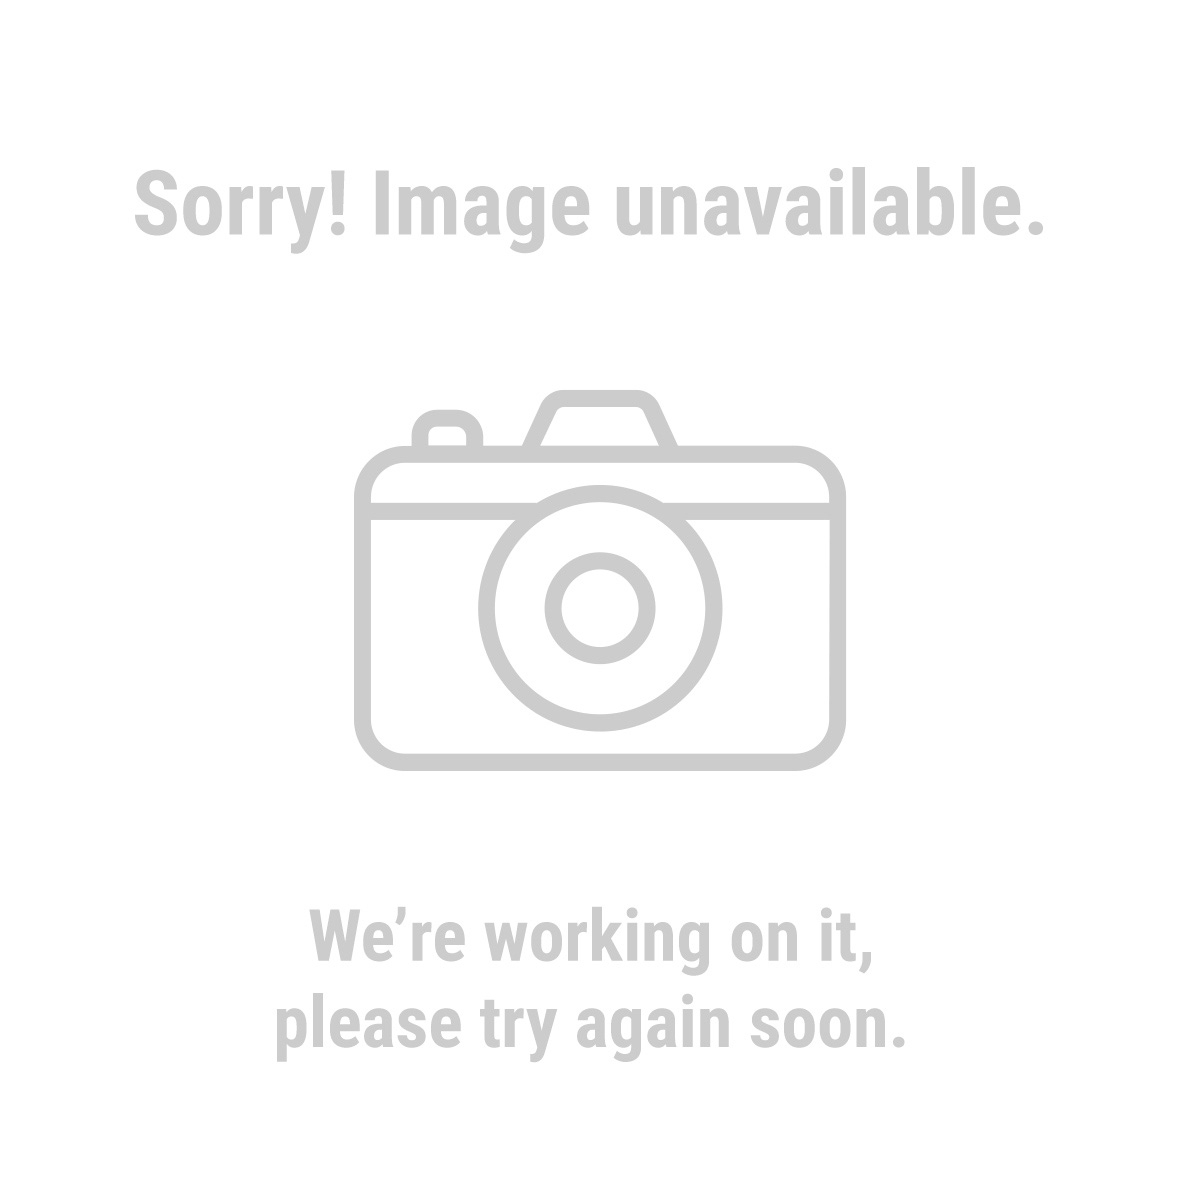 Warrior 69807 7 Piece 220 Grit Silicon Carbide Sanding Sheets